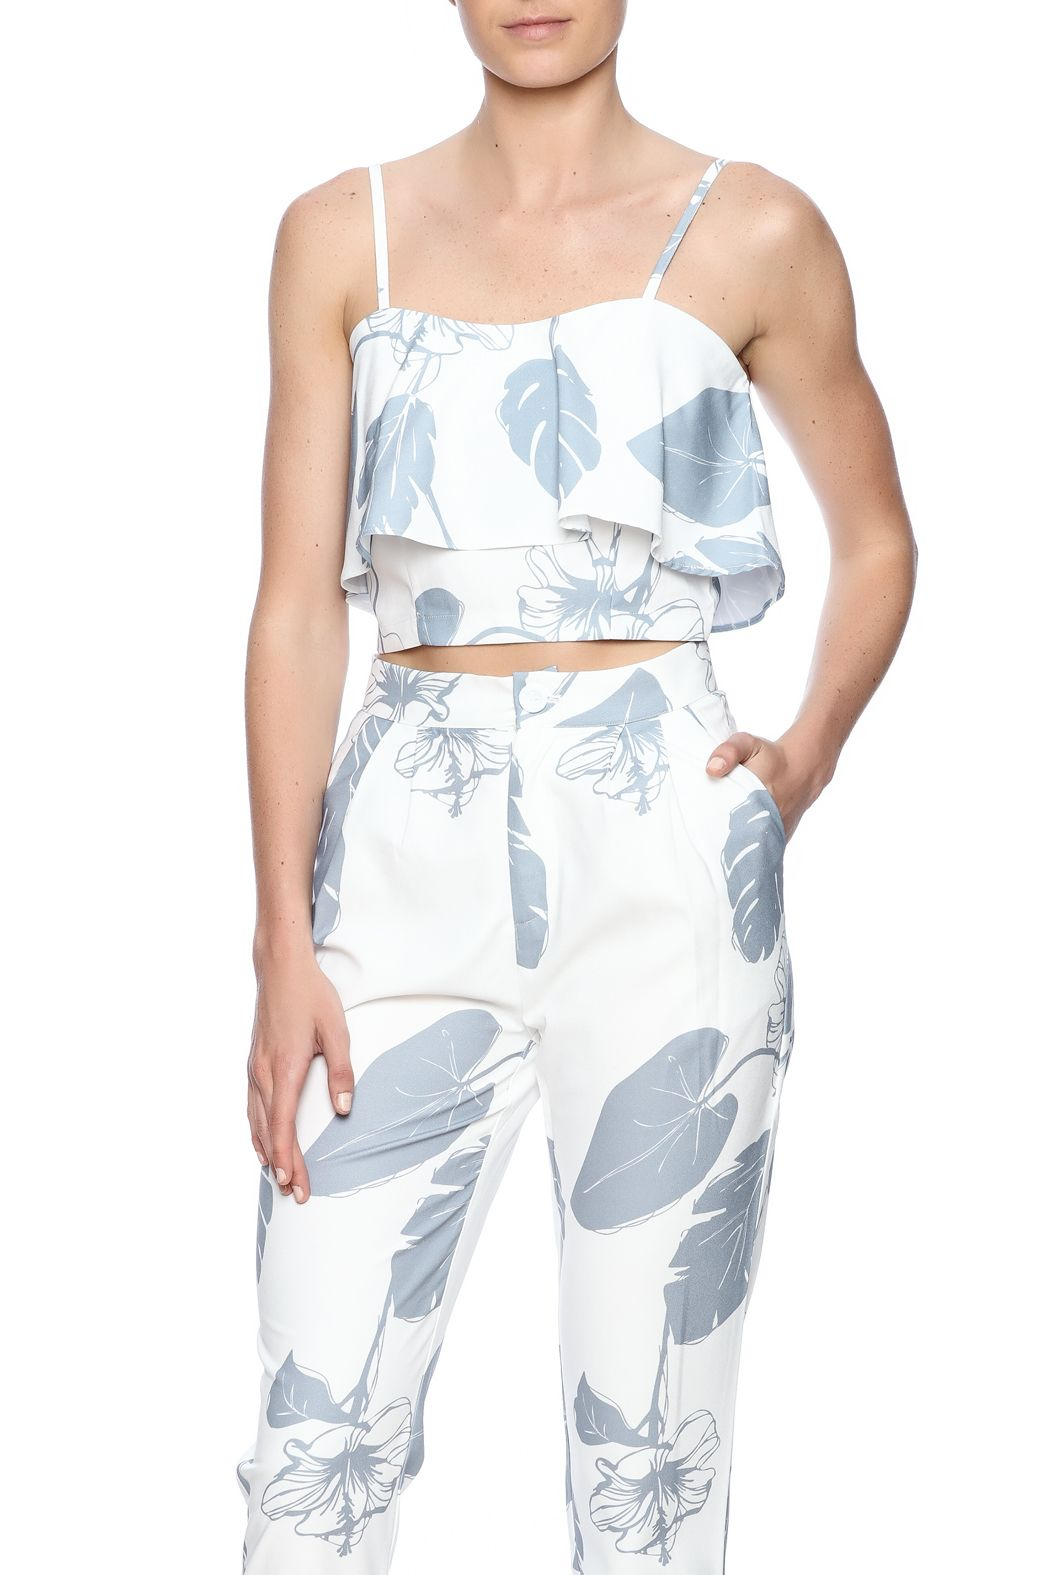 c746a8b7371 Spaghetti strap crop top with ruffle overlay in white base and silver floral  print. Adjustable straps and hidden zipper closure.